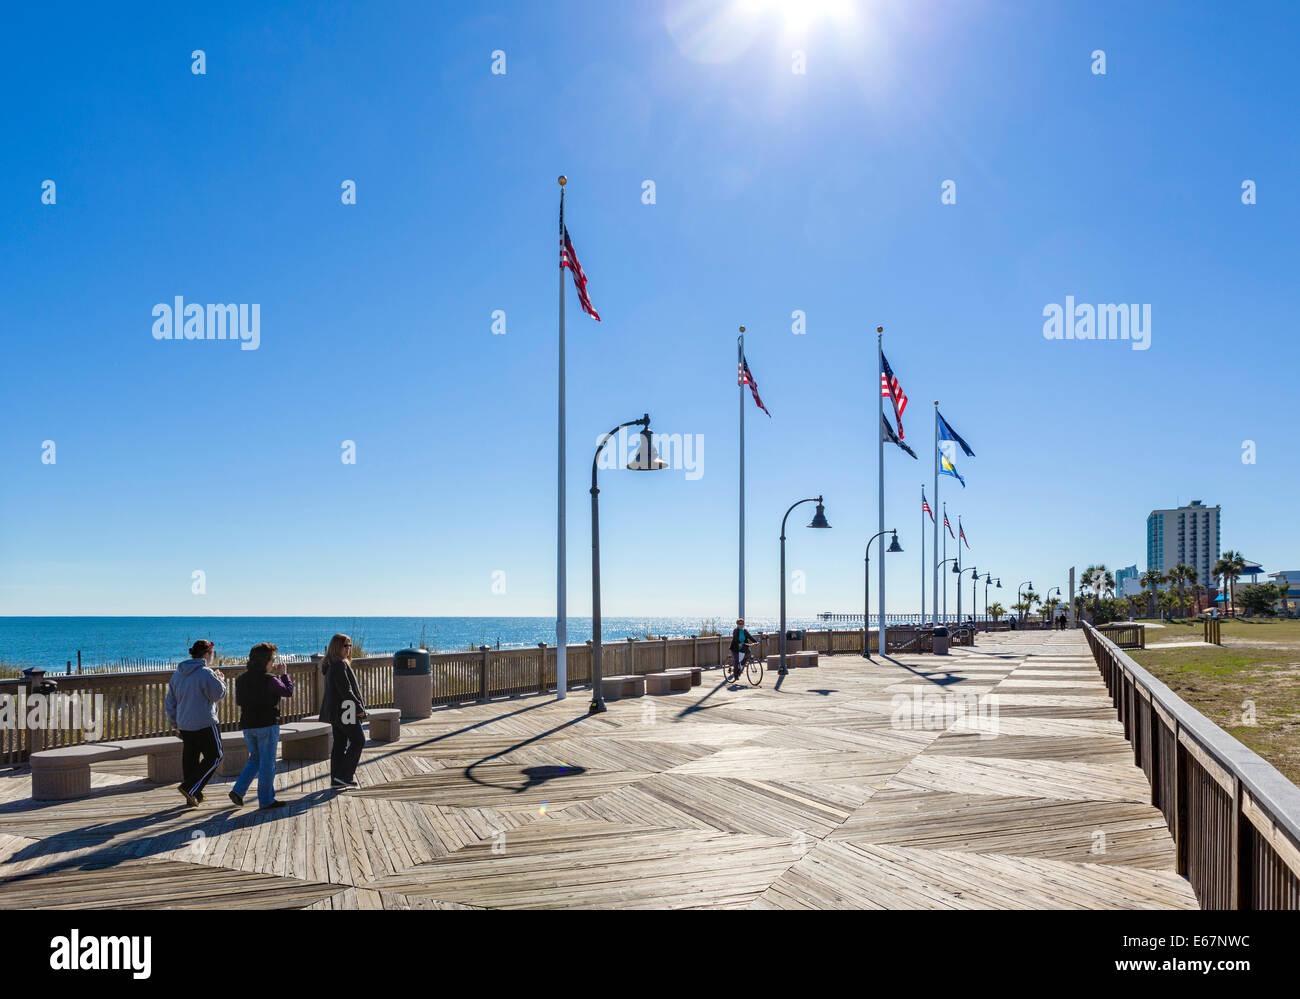 Myrtle Beach Boardwalk on a quiet out of season fall day, Myrtle Beach, South Carolina, USA - Stock Image